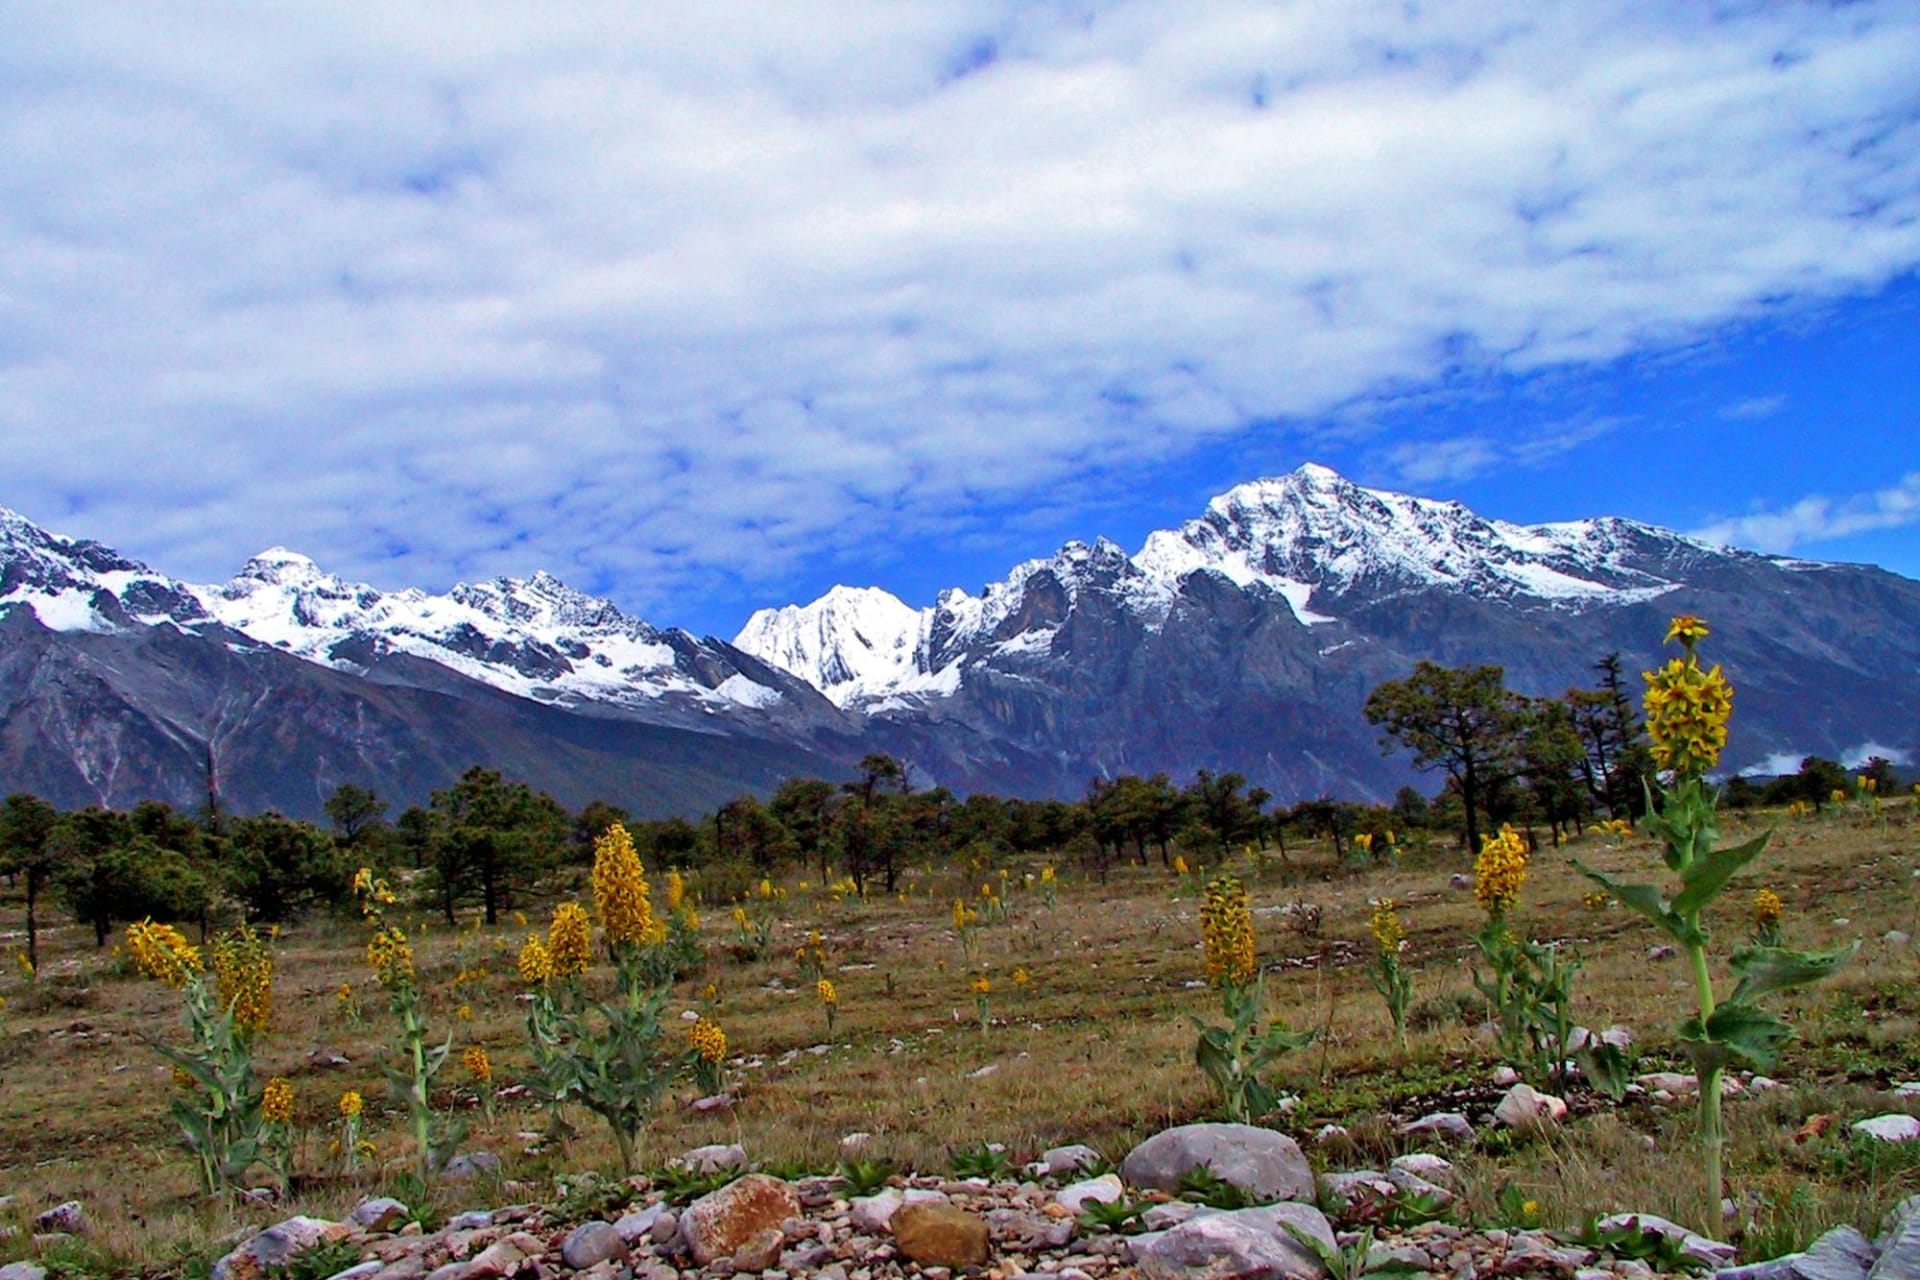 Lijiang: Snow Mountain